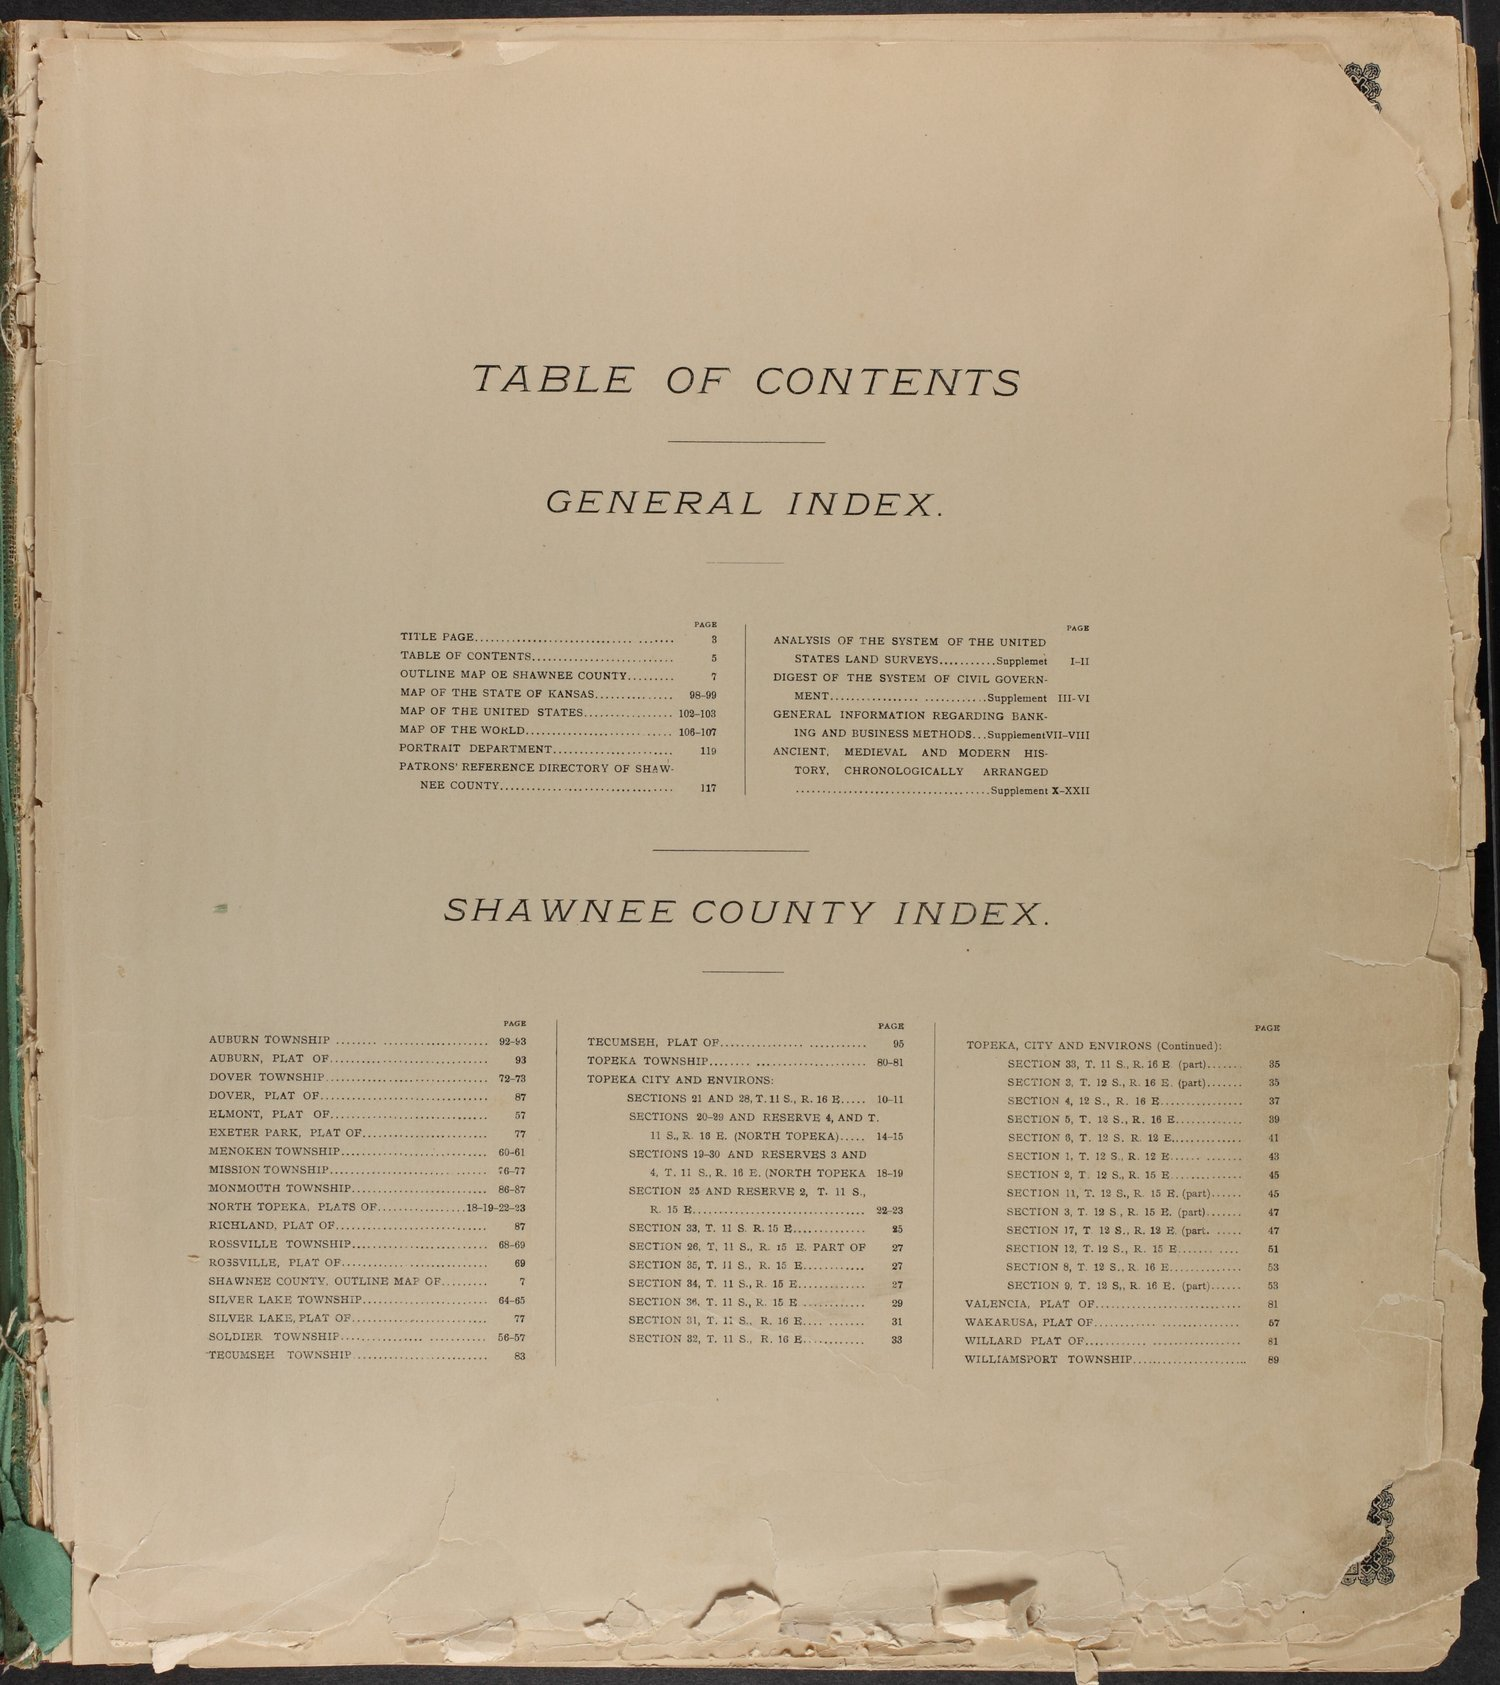 Standard atlas of Shawnee County, Kansas - Table of Contents